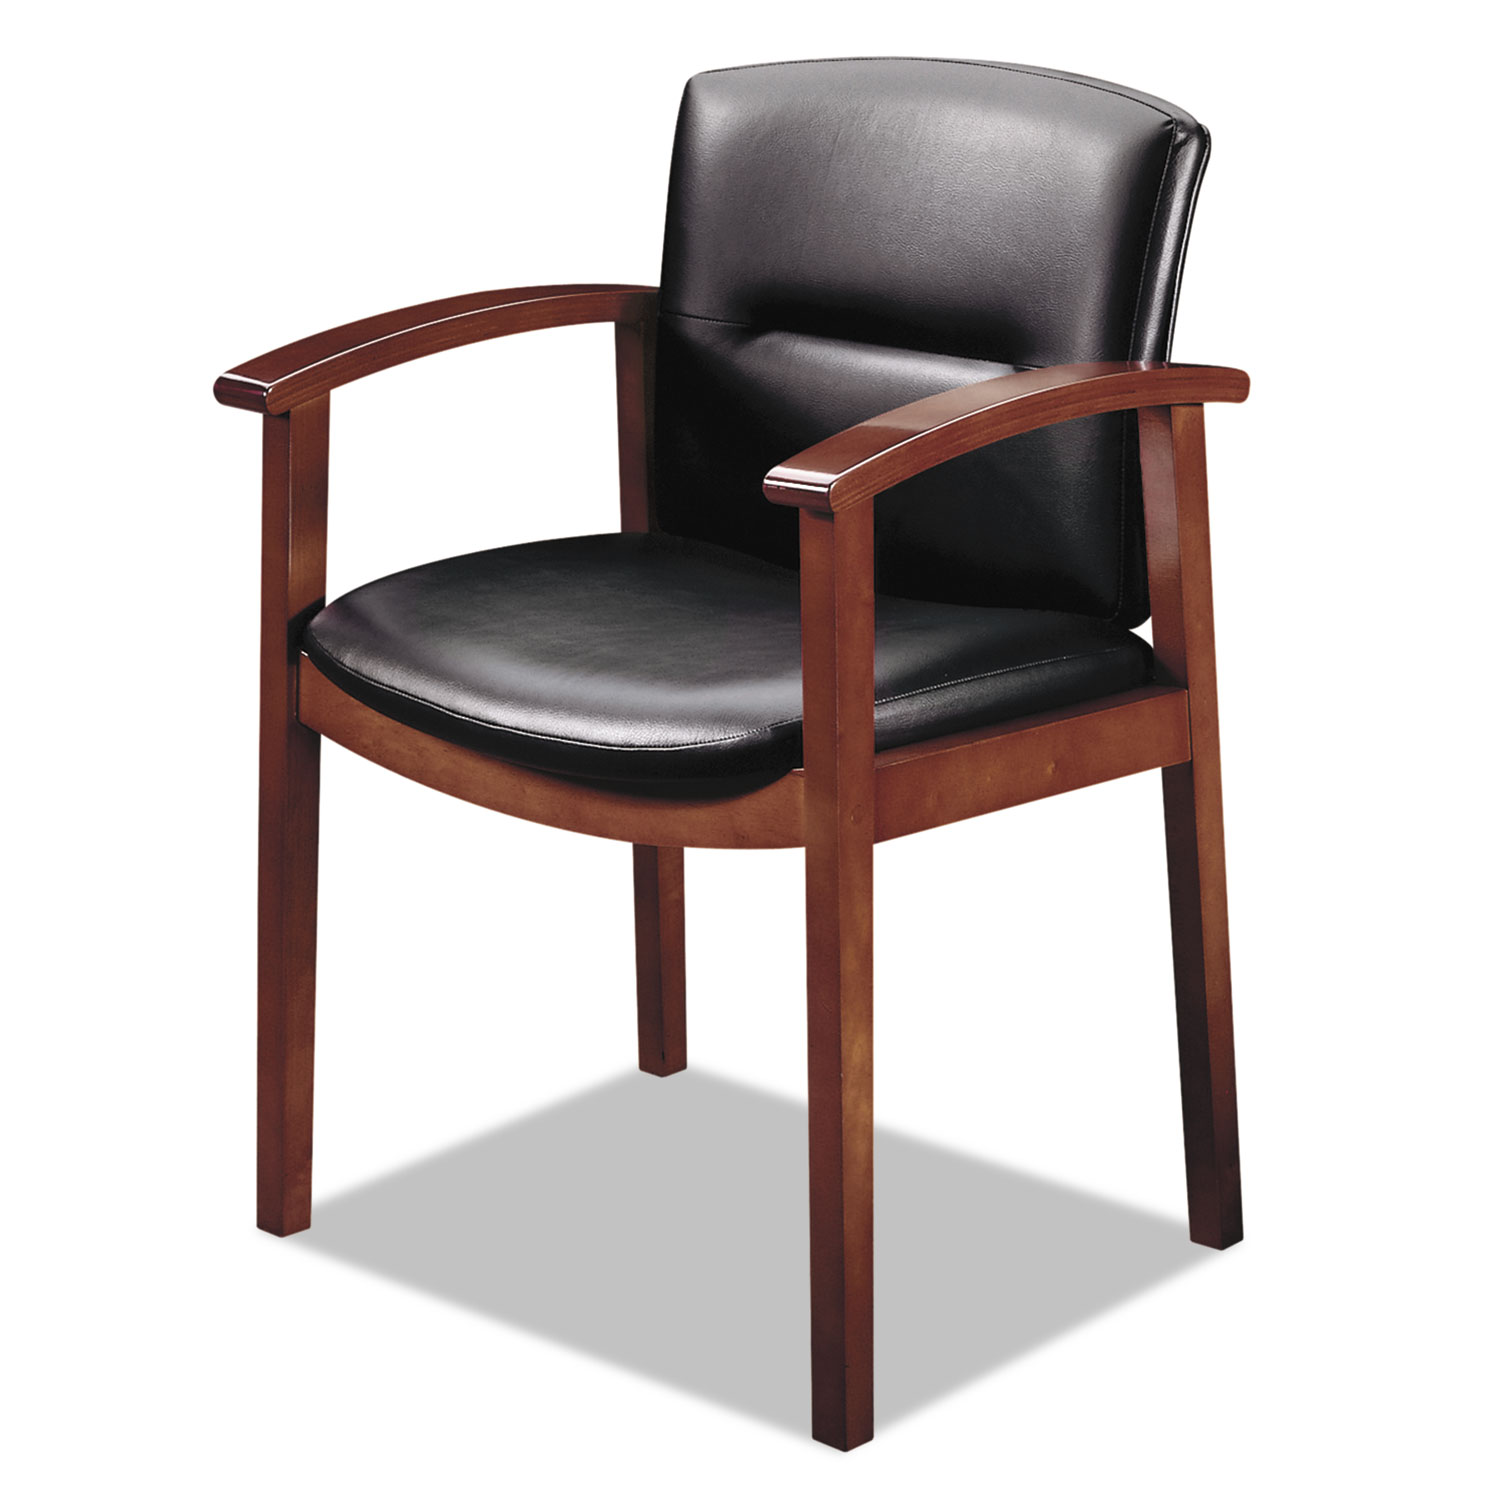 hon invitation guest chair antique barber chairs for sale 5000 series park avenue collection by